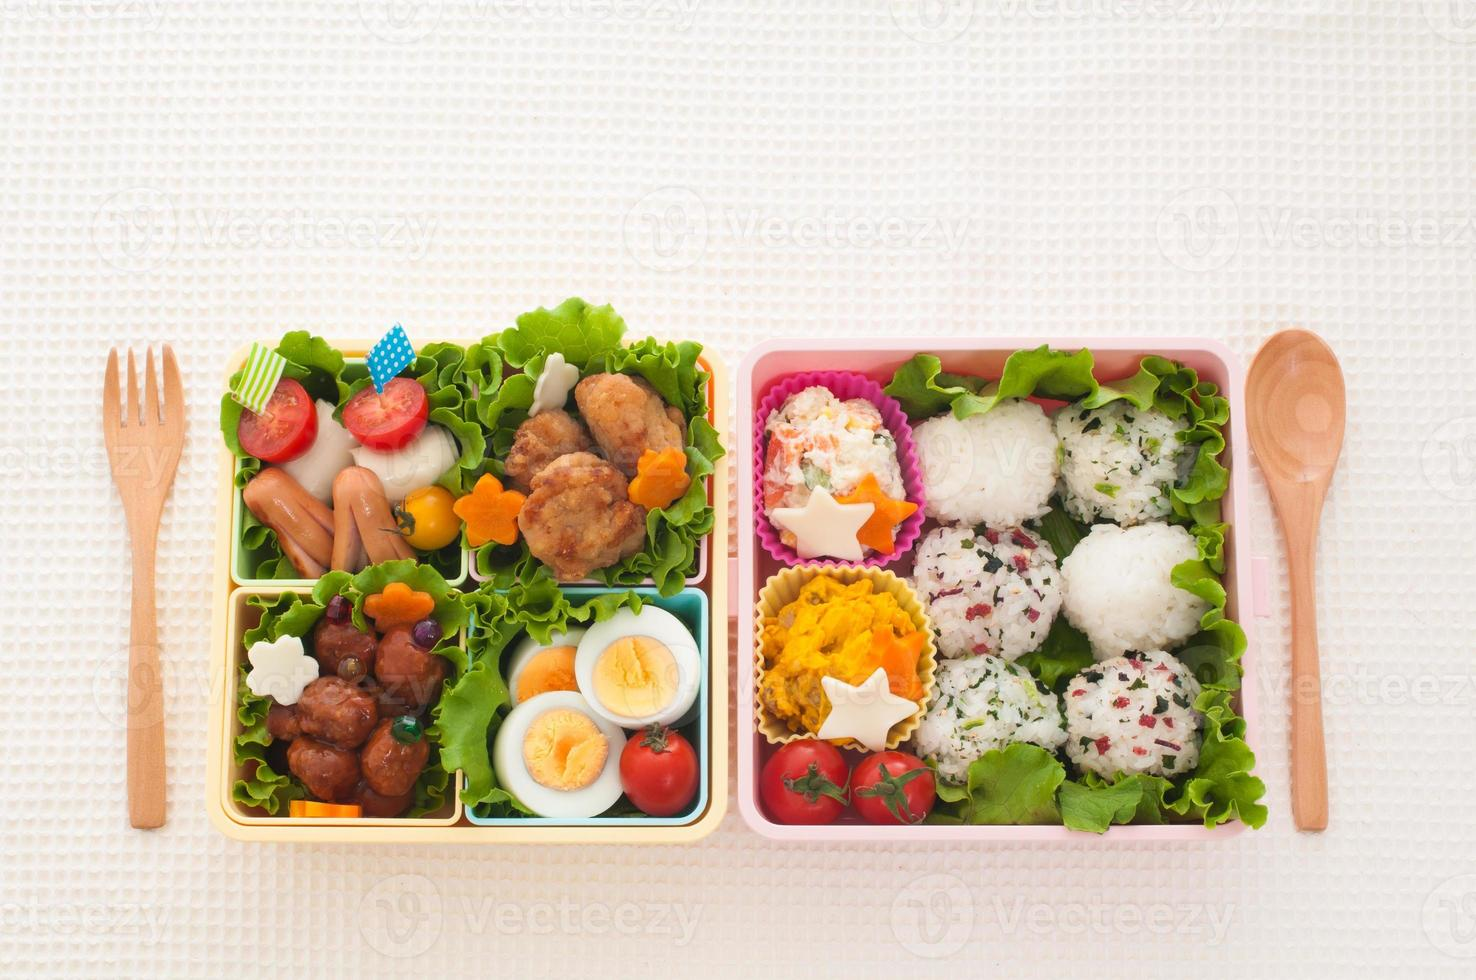 Japanese colorful lunch photo